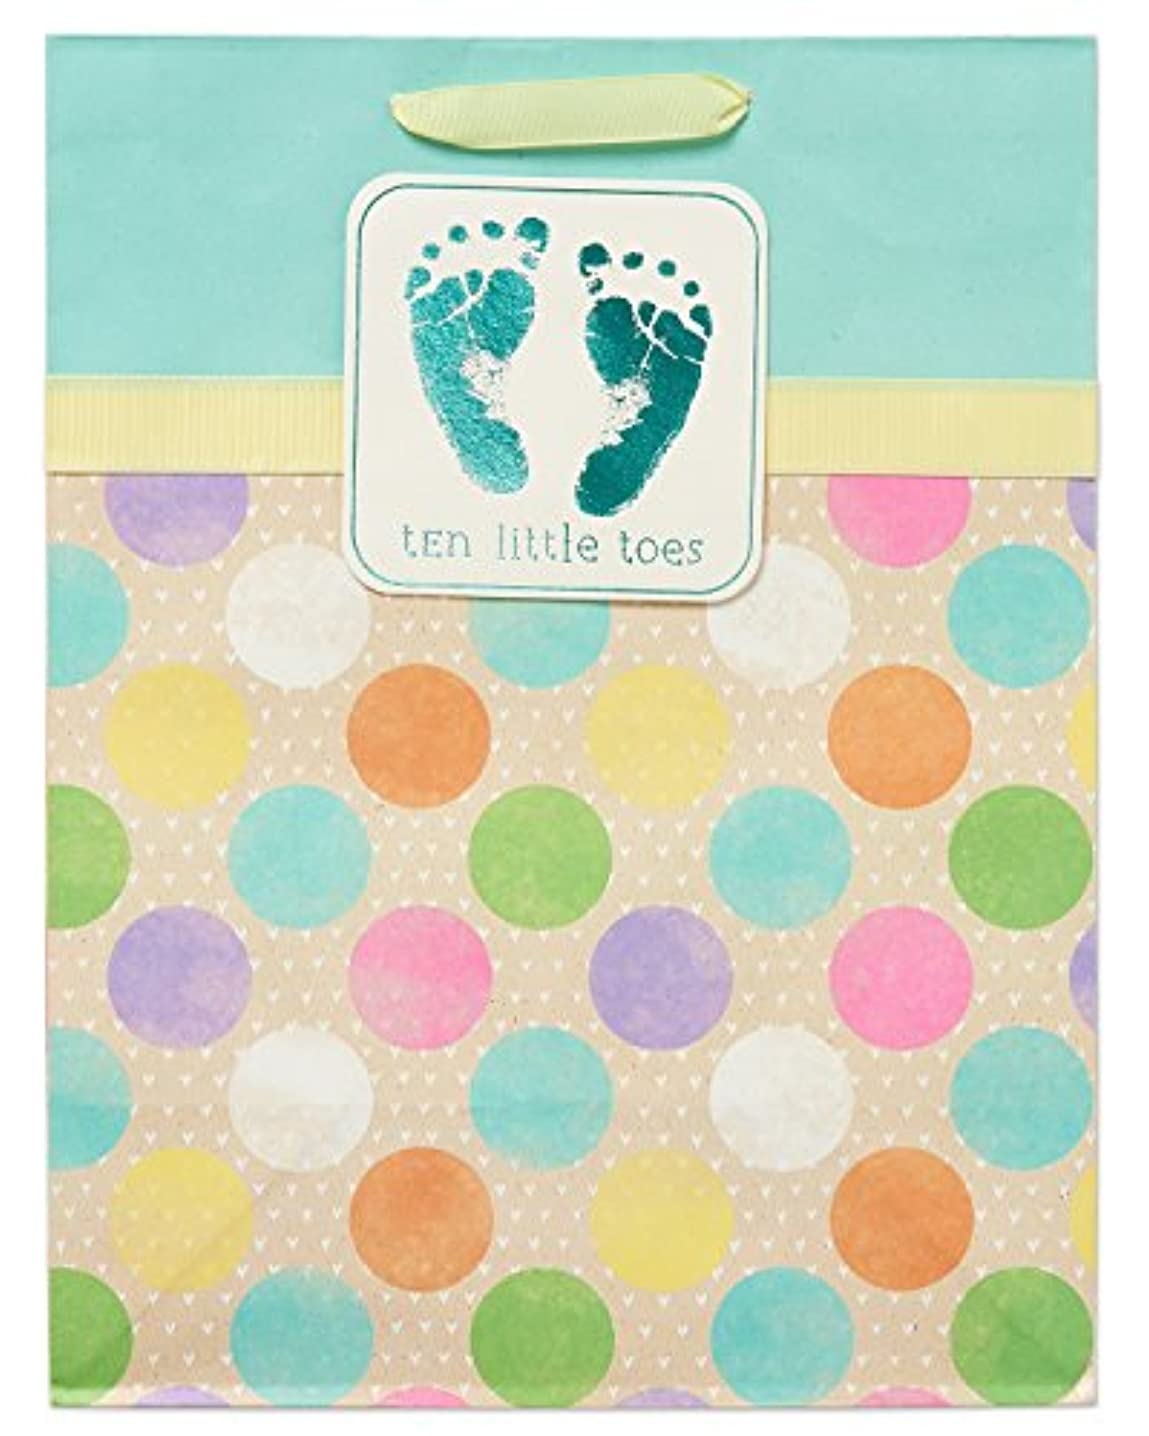 American Greetings Medium Baby Gift Bag, Ten Little Toes with Dots